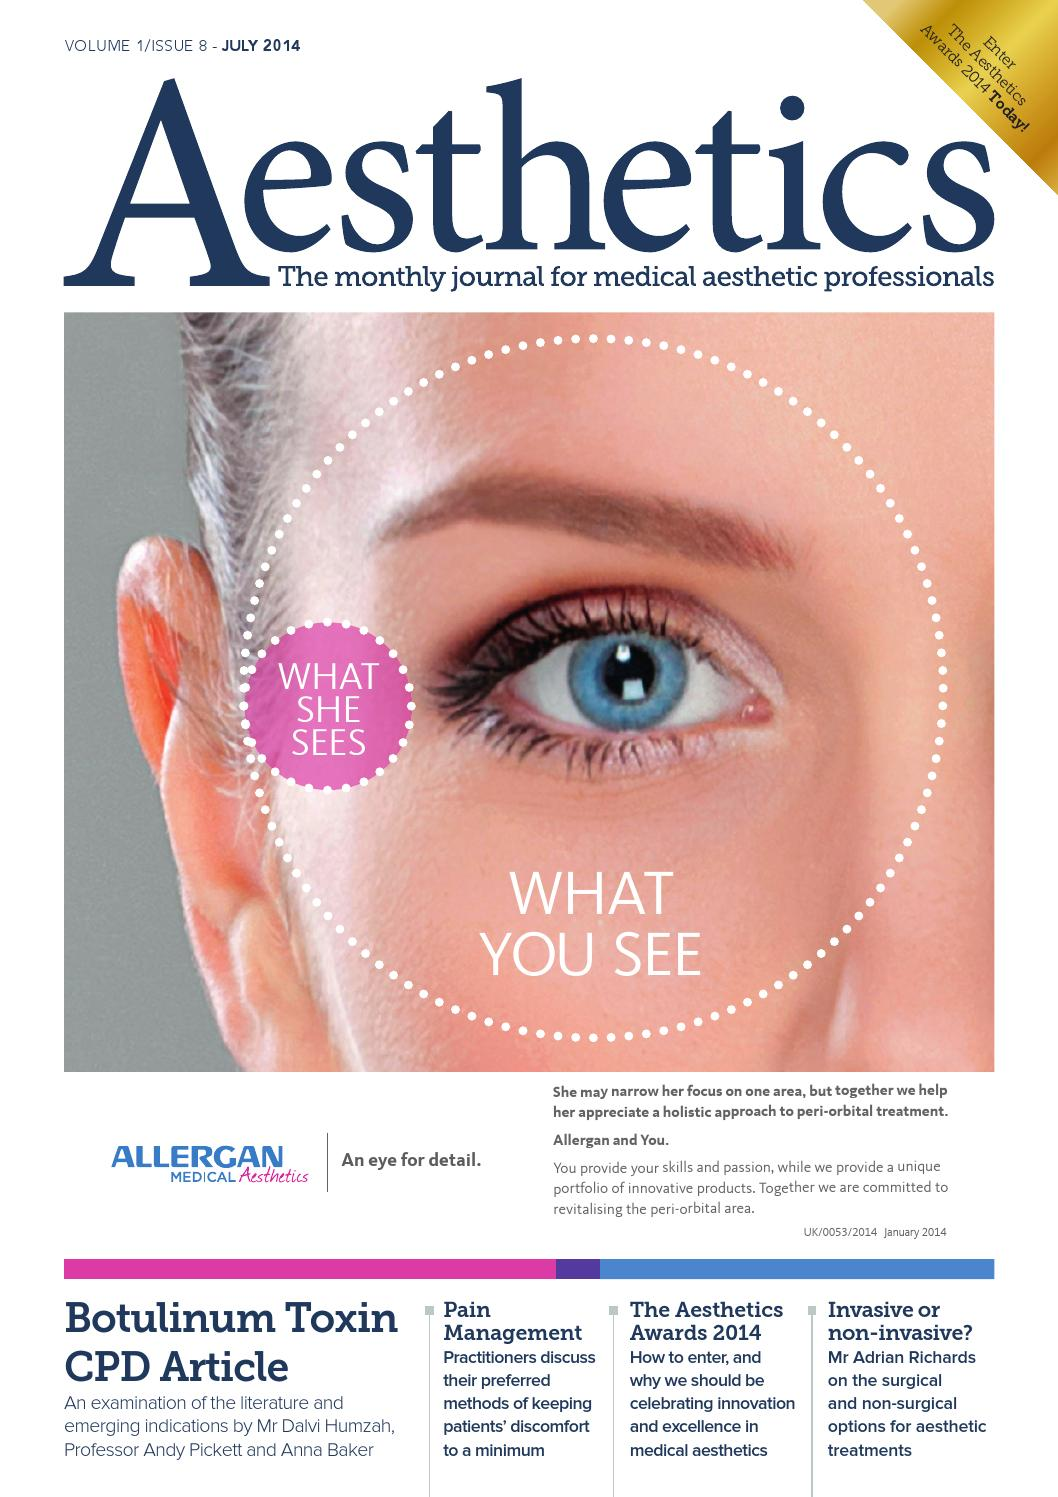 Aesthetics july 2014 by Aesthetics Journal - issuu